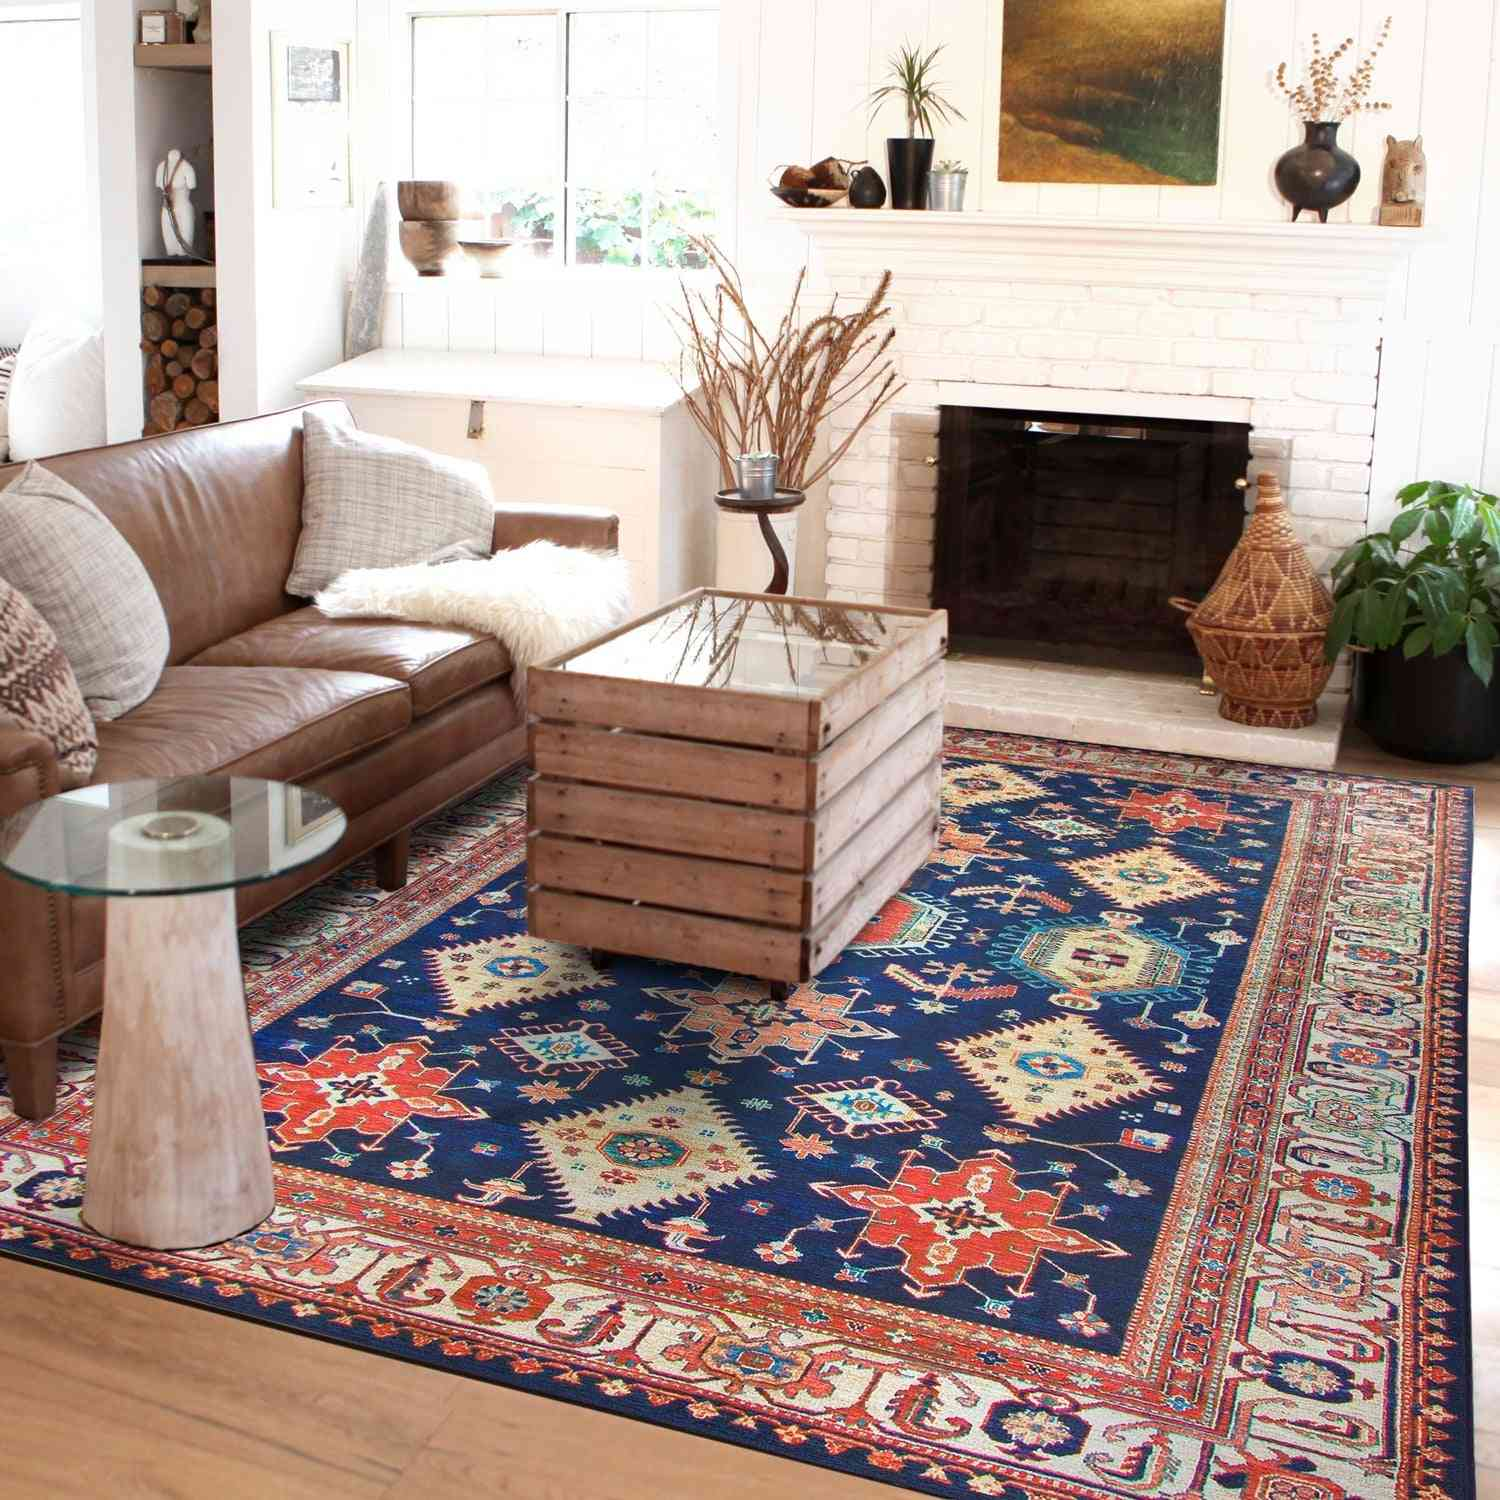 The 12 Best Places To A Rug In 2021